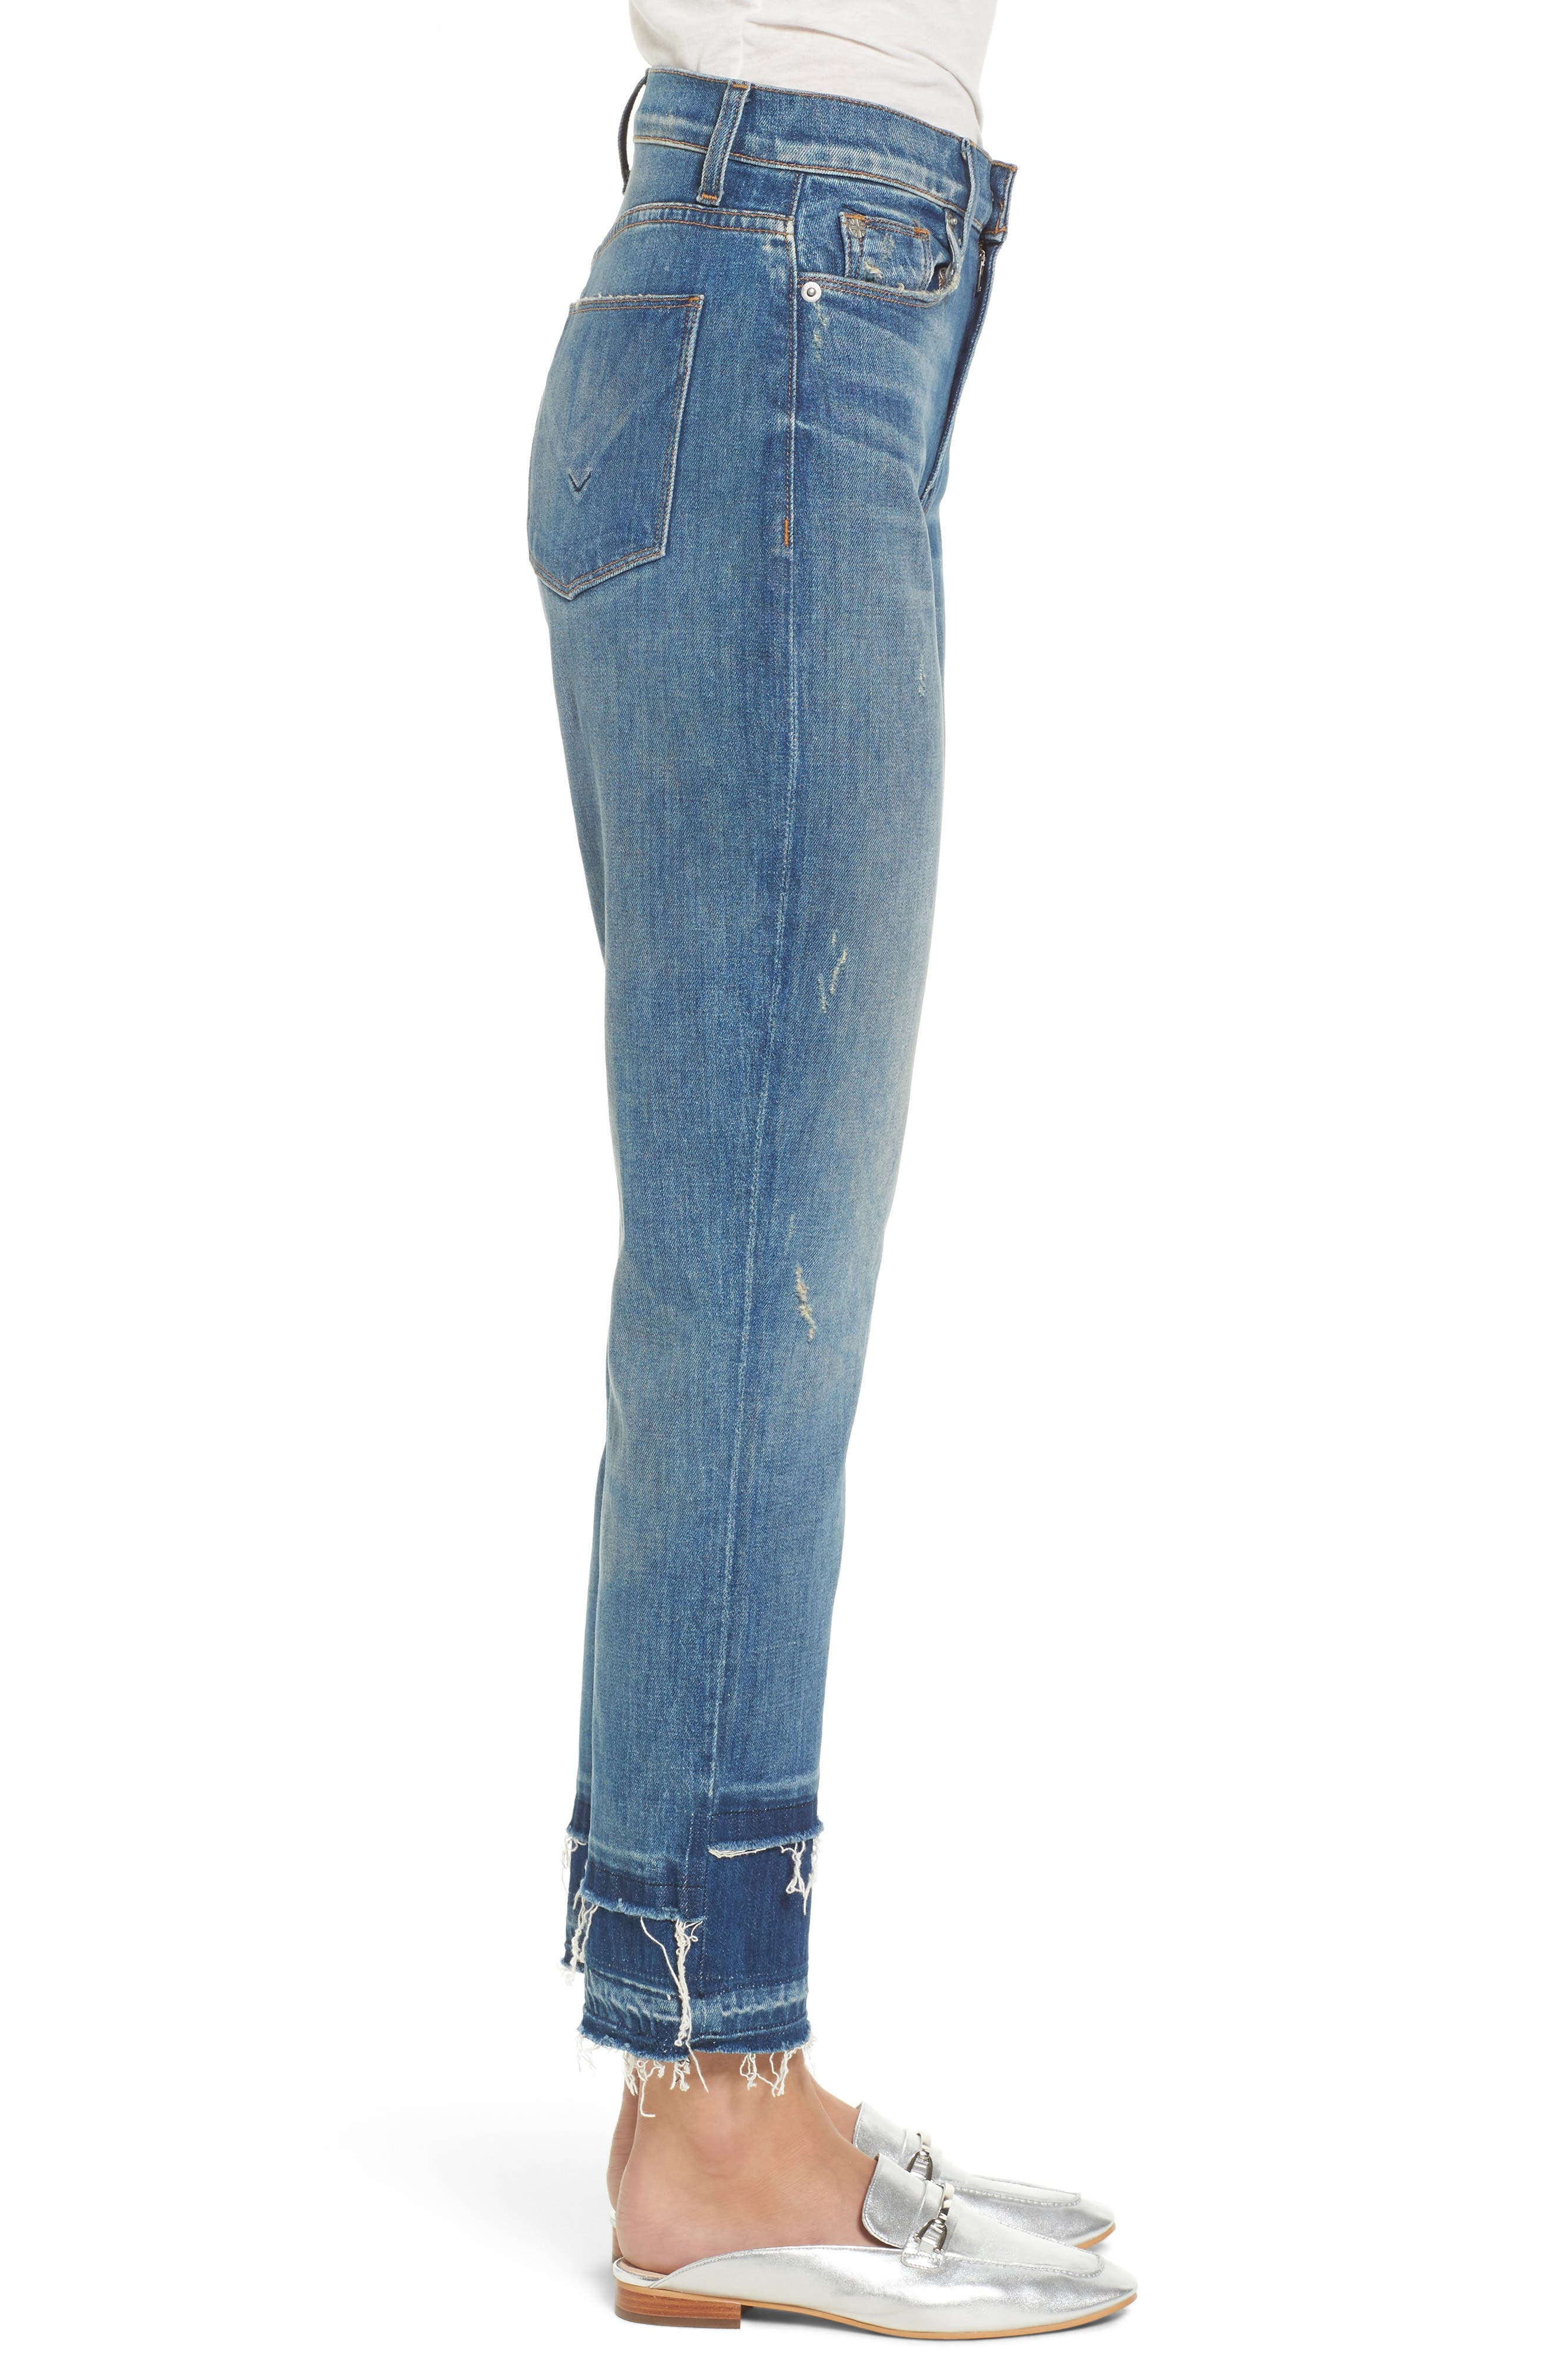 Zoeey High Waist Crop Straight Leg Jeans,                             Alternate thumbnail 3, color,                             421